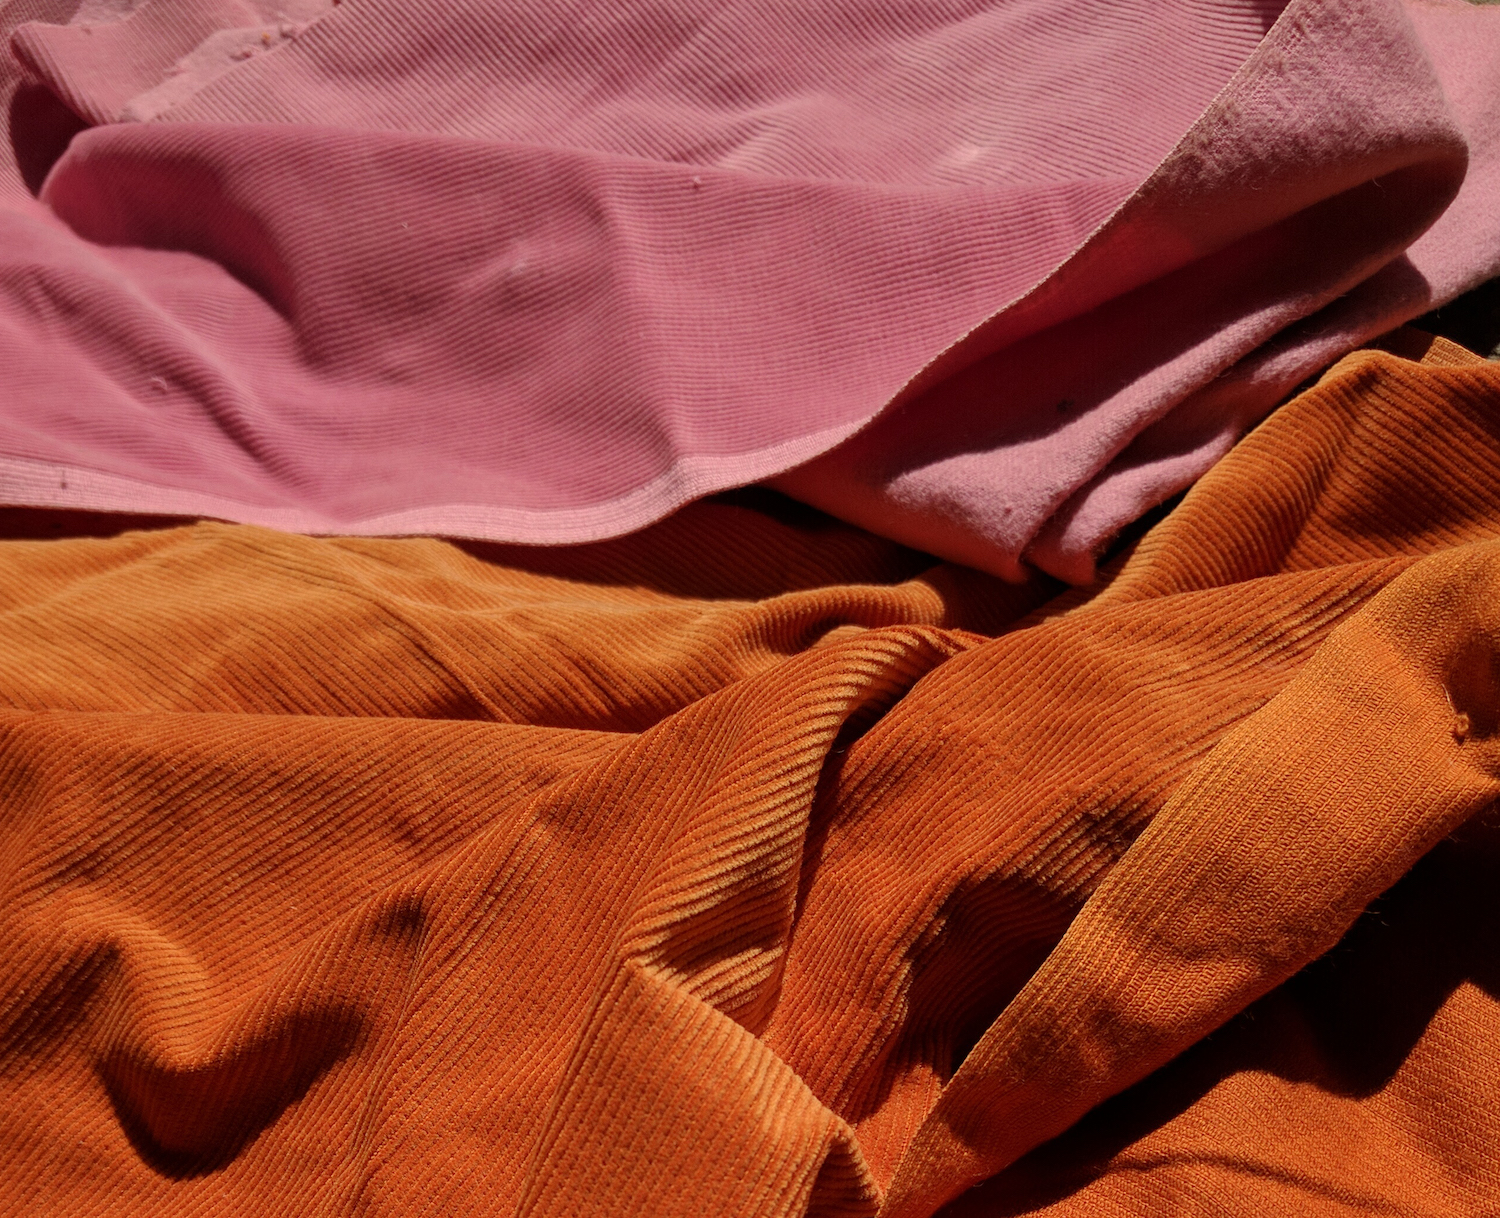 The original velvet that Casini used to make his bell bottoms. Photograph by Federica Pischiutta.